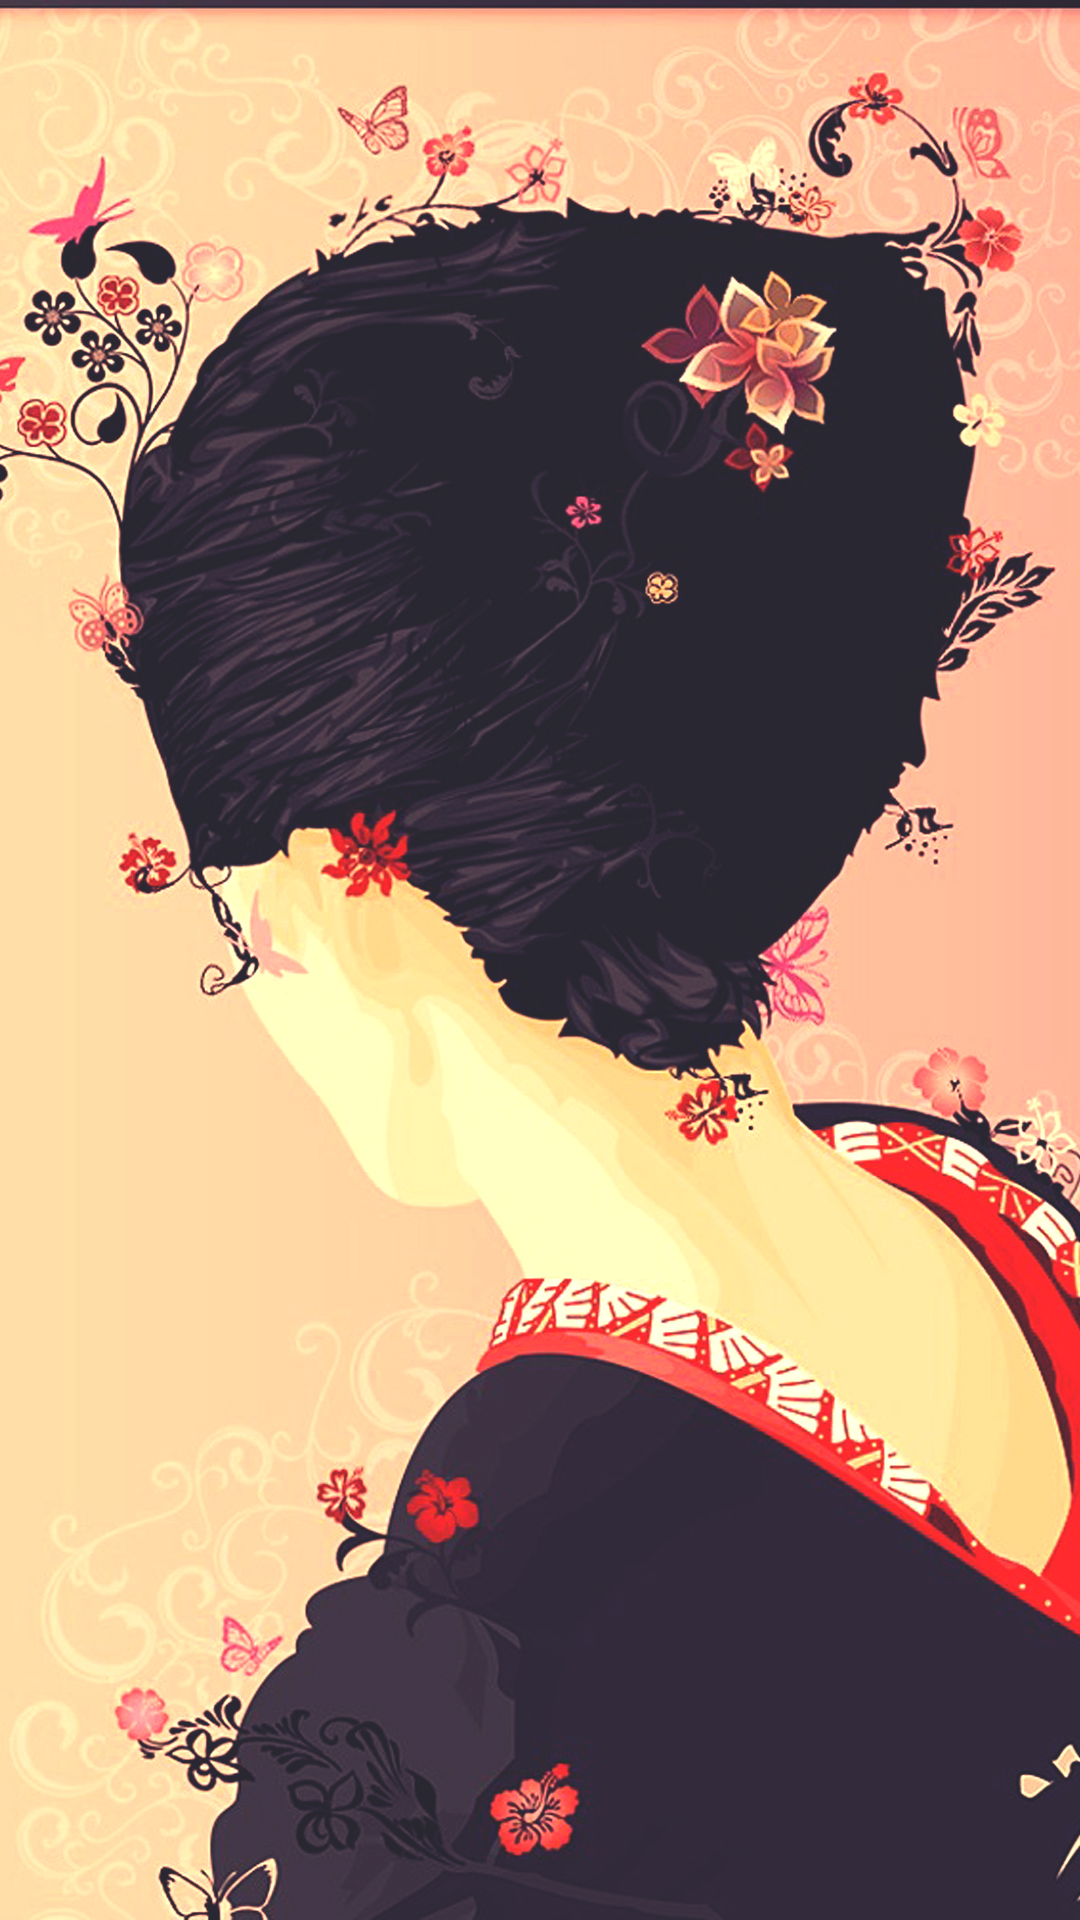 Japanese Geisha Illustration Cherry Blossom Android Wallpaper 1080x1920